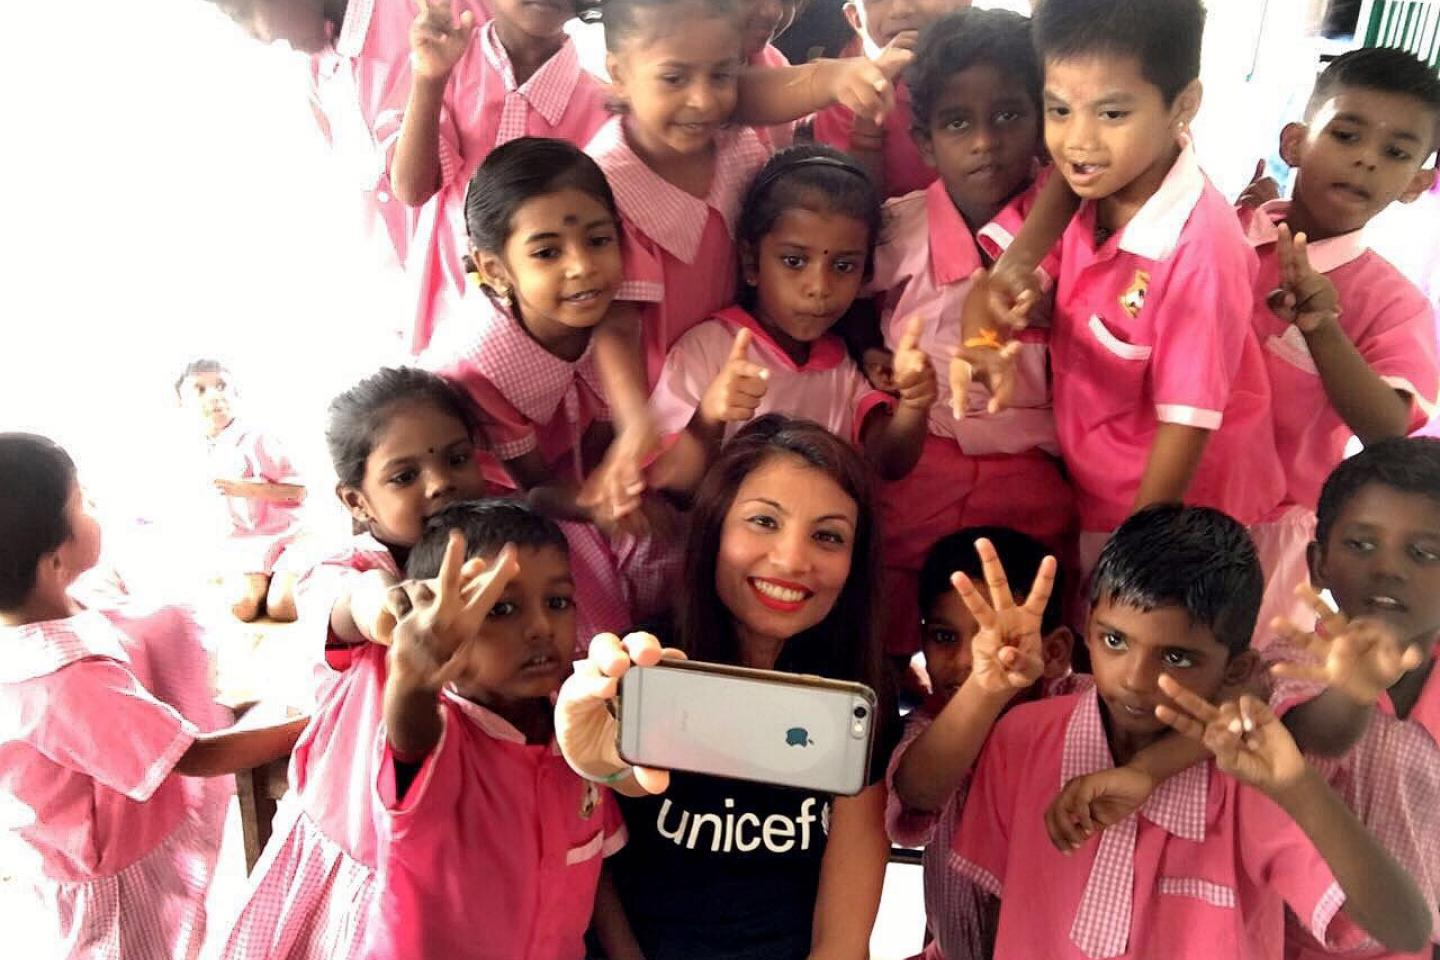 UNICEF staff and children take a wefie